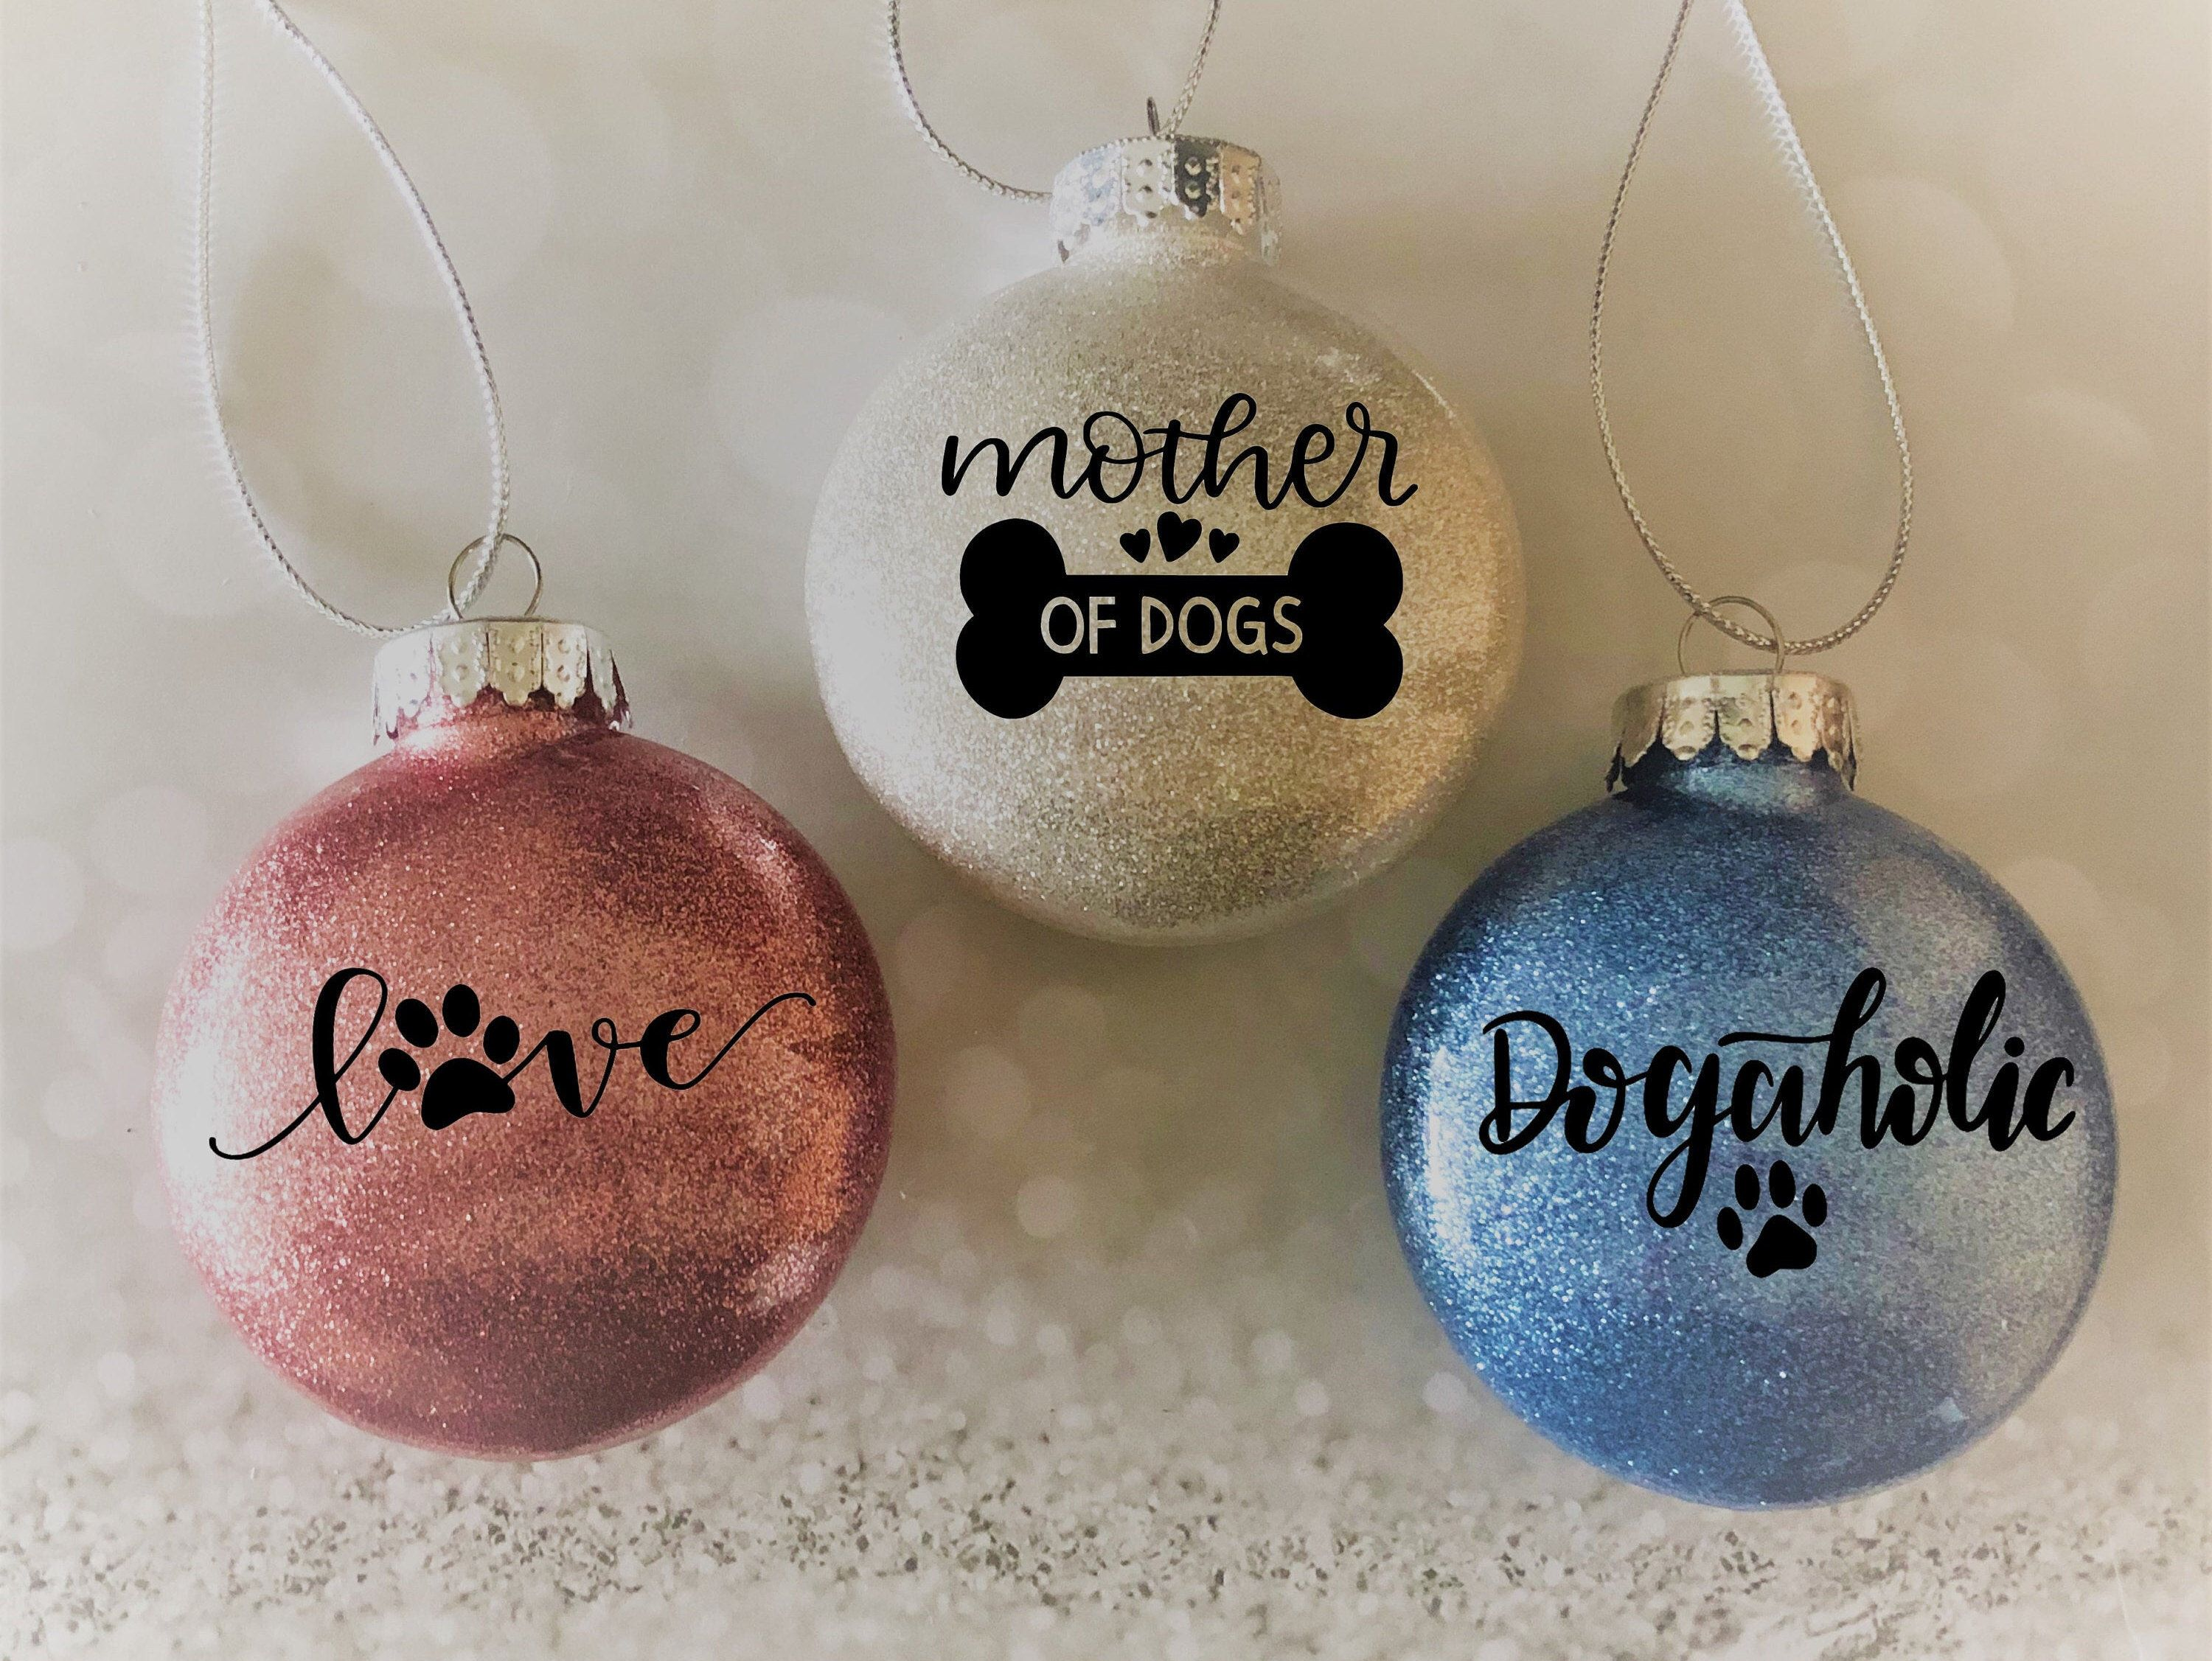 Mother Of Dogs Love Dogaholic Glitter Ornaments Dog Etsy Homemade Christmas Ornaments Diy Glitter Ornaments Dog Ornaments